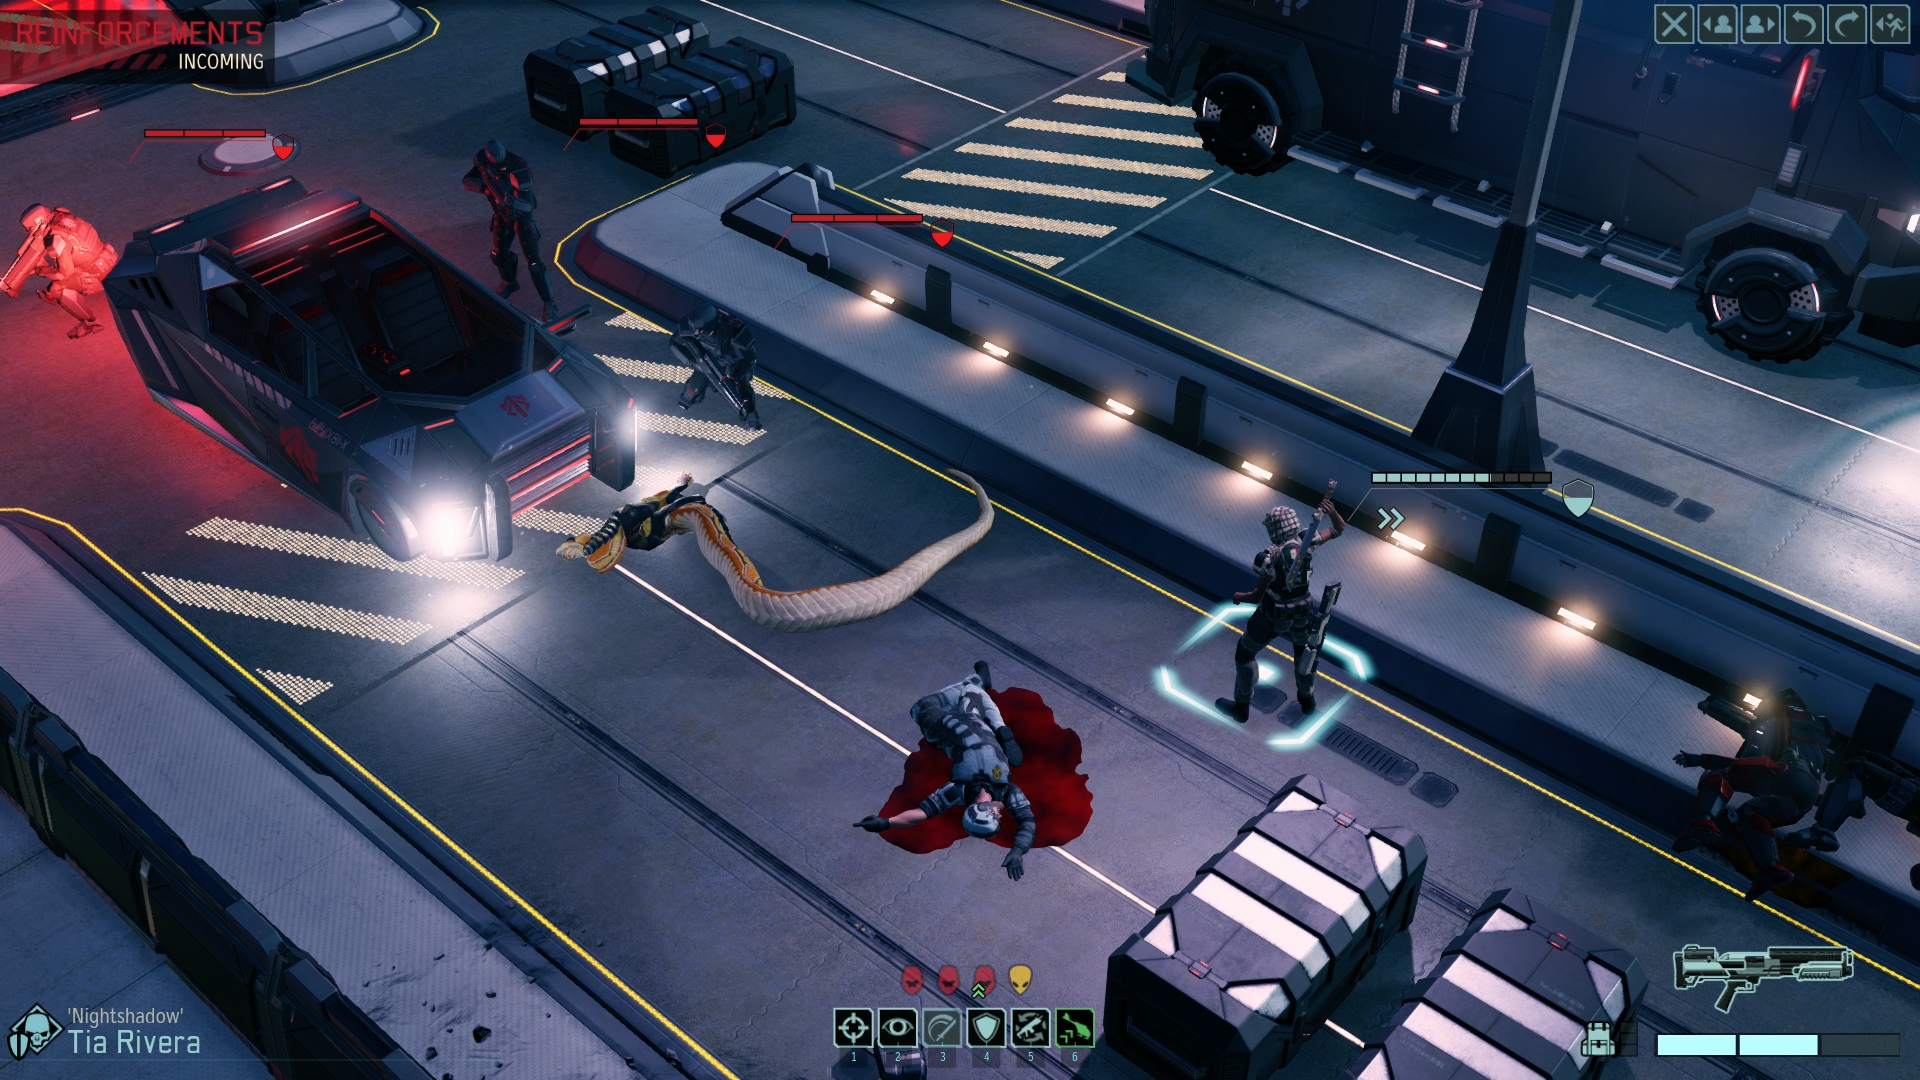 Xcom 2 shows off tactical superiority with new gameplay for Portent xcom not now